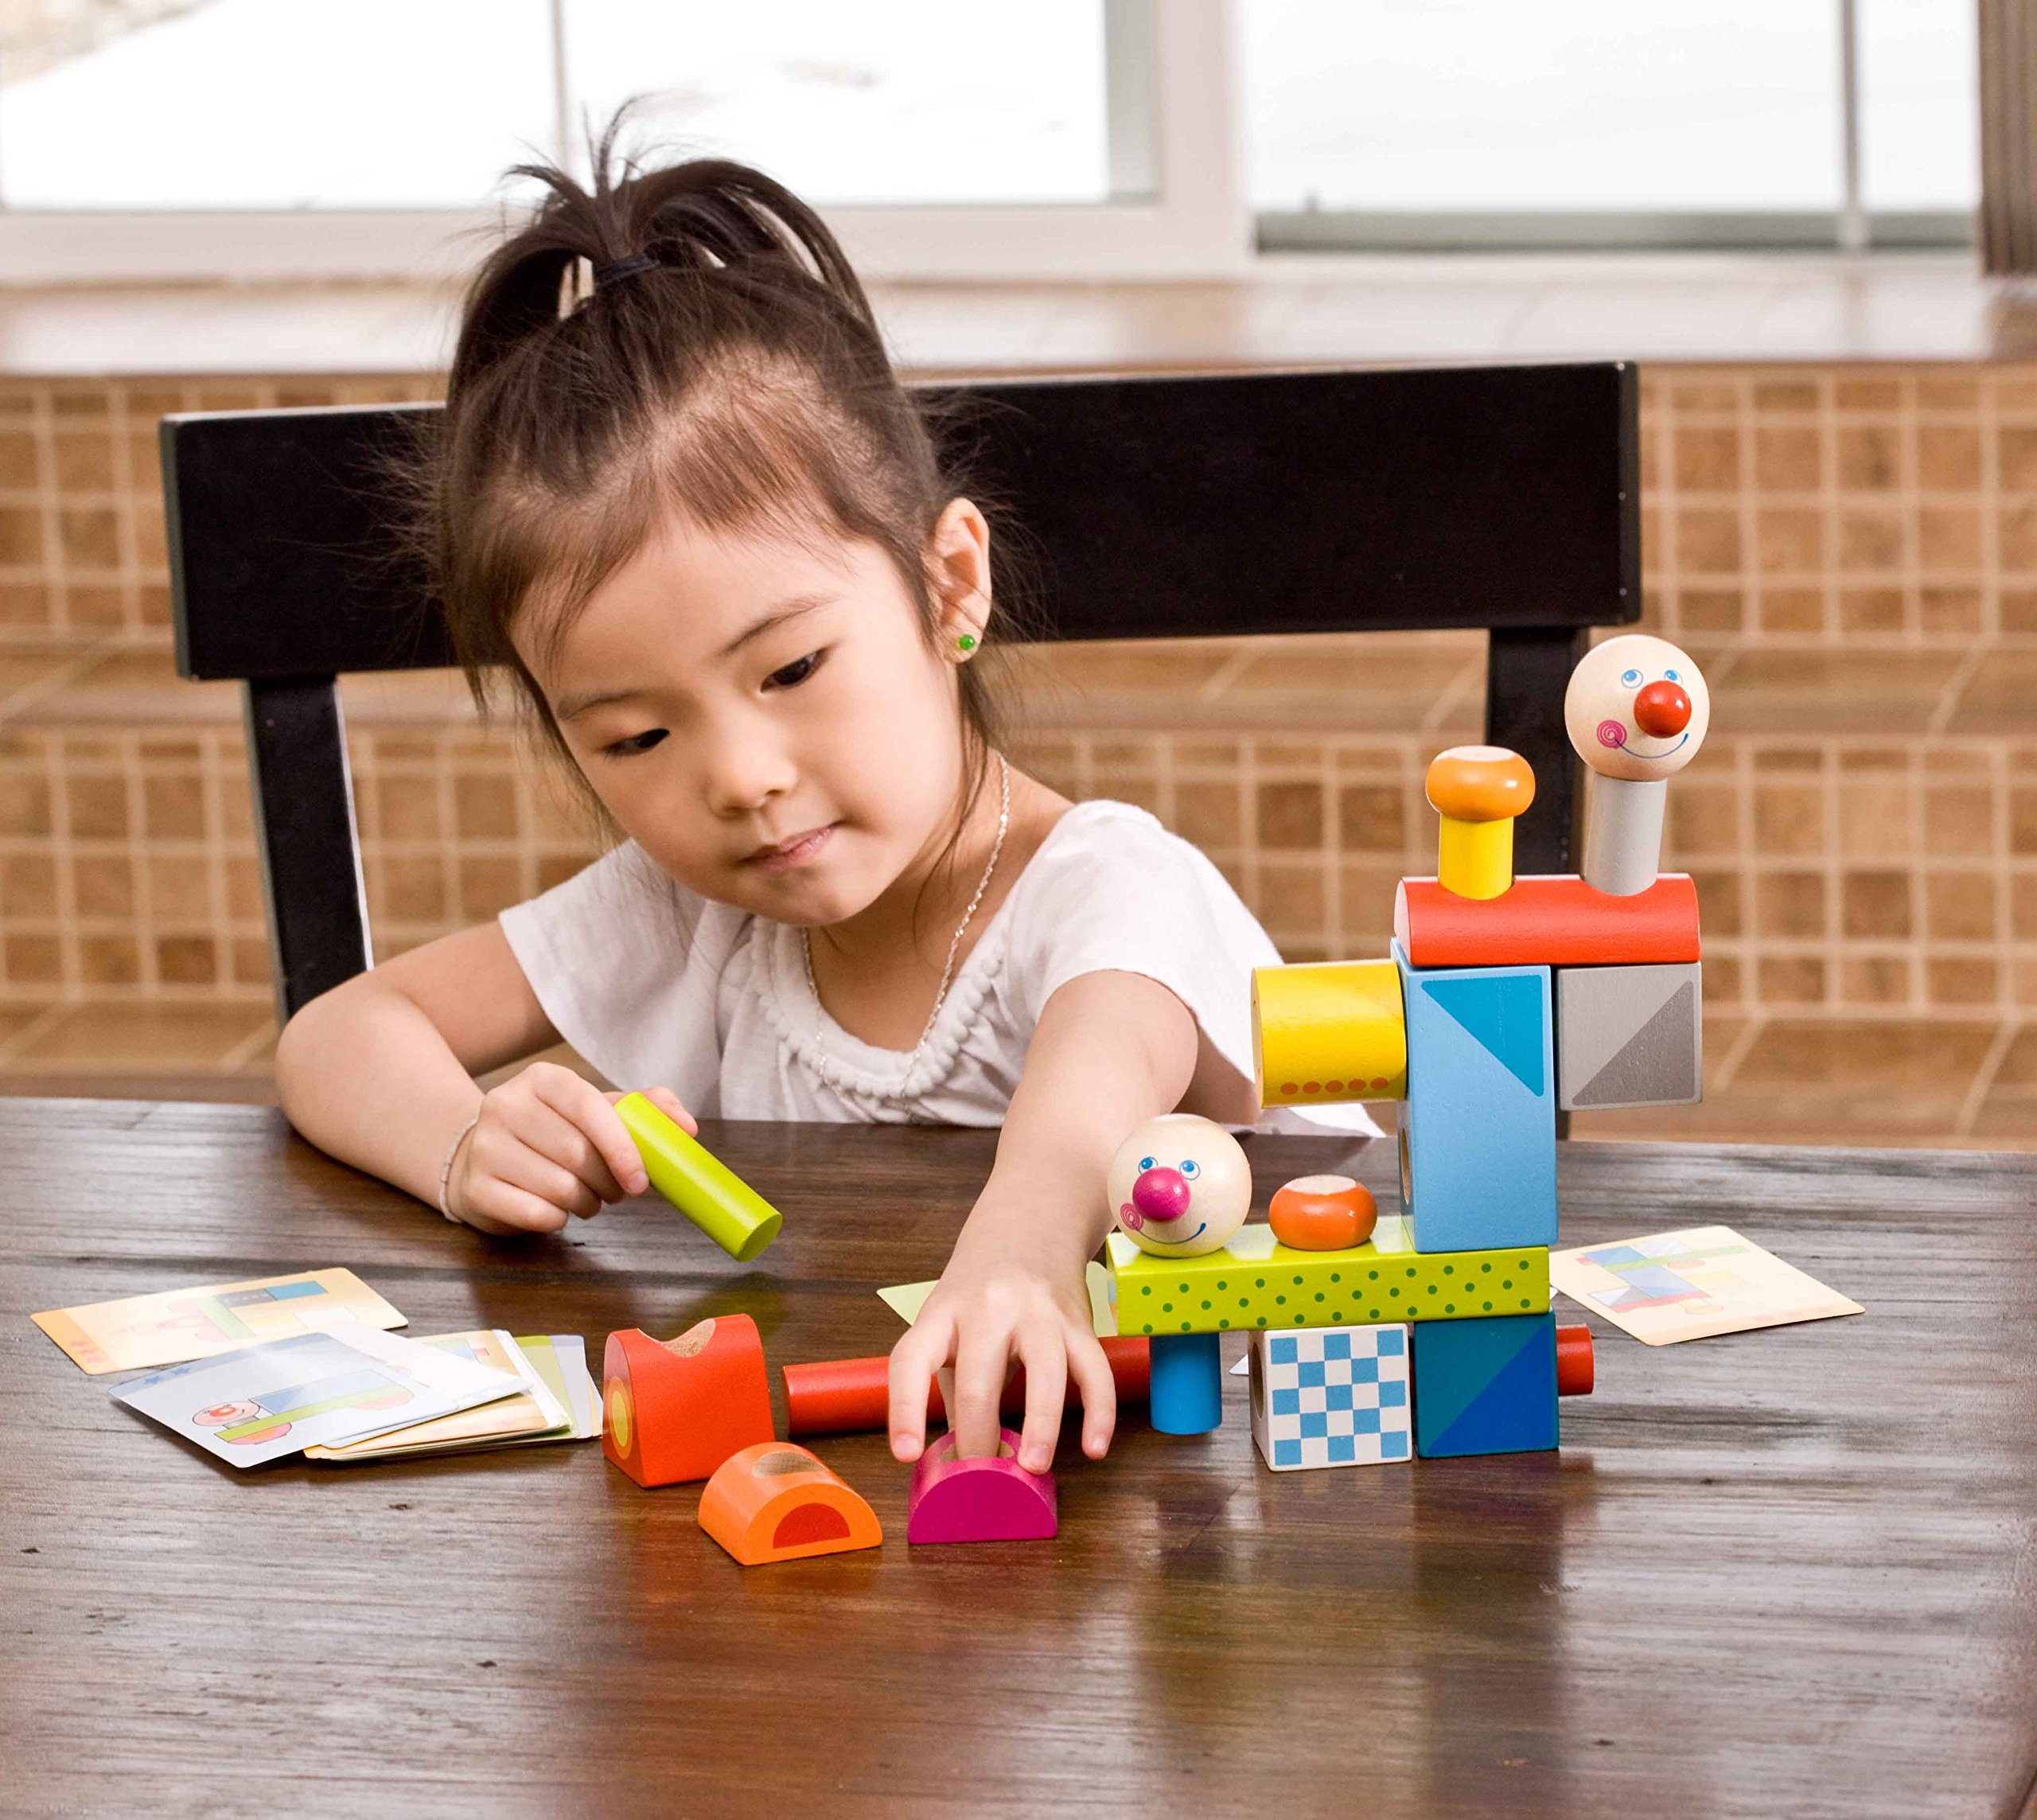 HABA Brain Builder Peg Set Building Blocks with Pattern Cards & 3 Levels of Difficulty for Ages 2+ by HABA (Image #3)